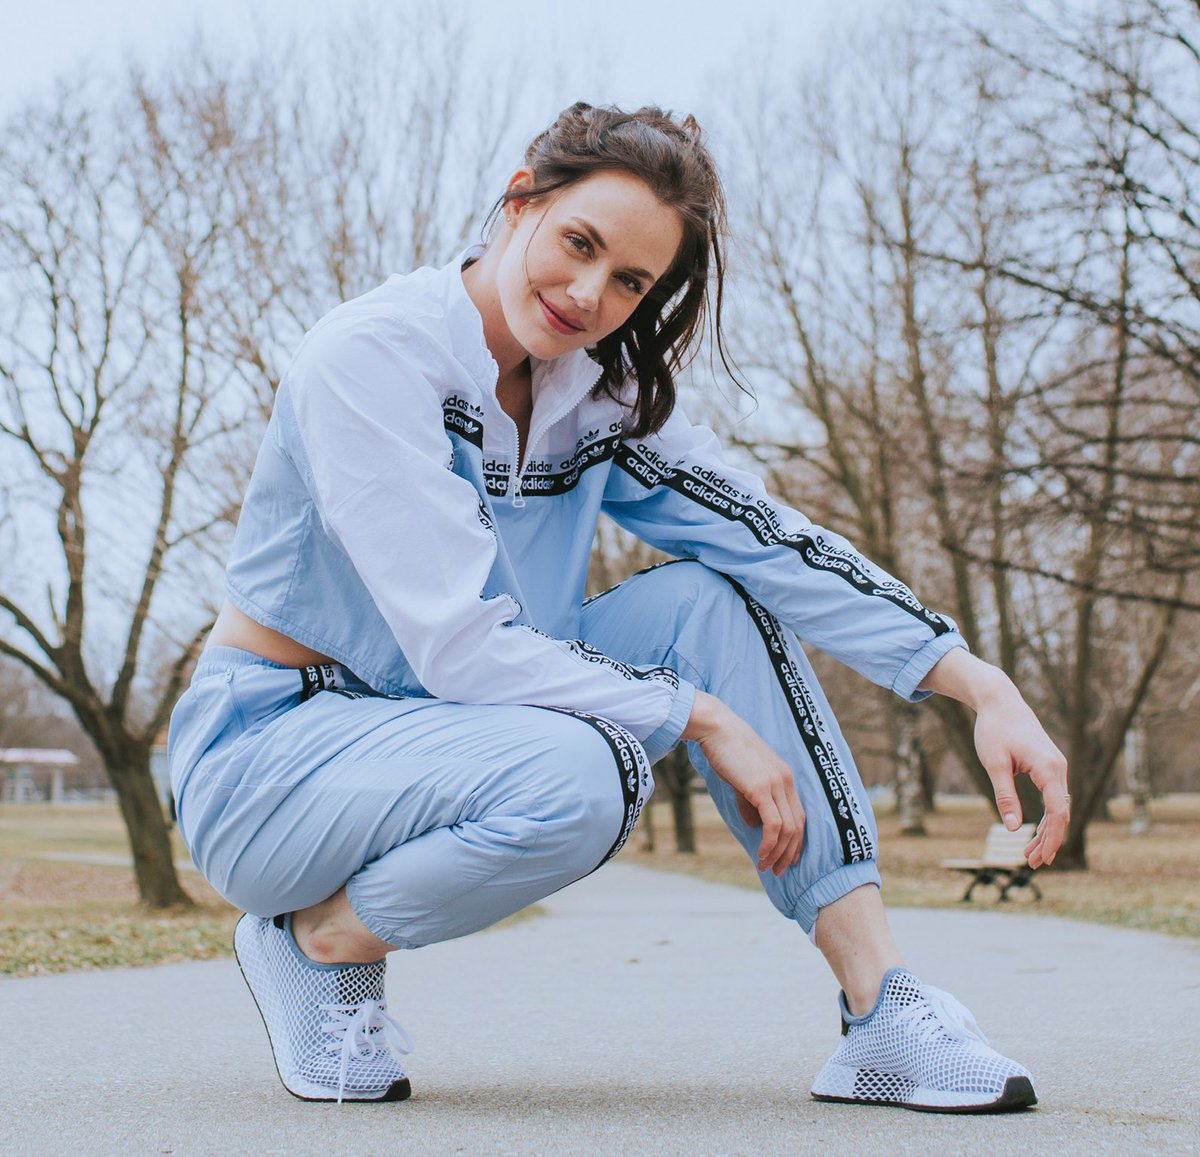 Ready to try new sports - and enjoy in-person group workouts again! @adidasCA @adidas #hometeam #createdwithadidas #ad . What are YOU ready for? https://t.co/zQuTtBzYSW